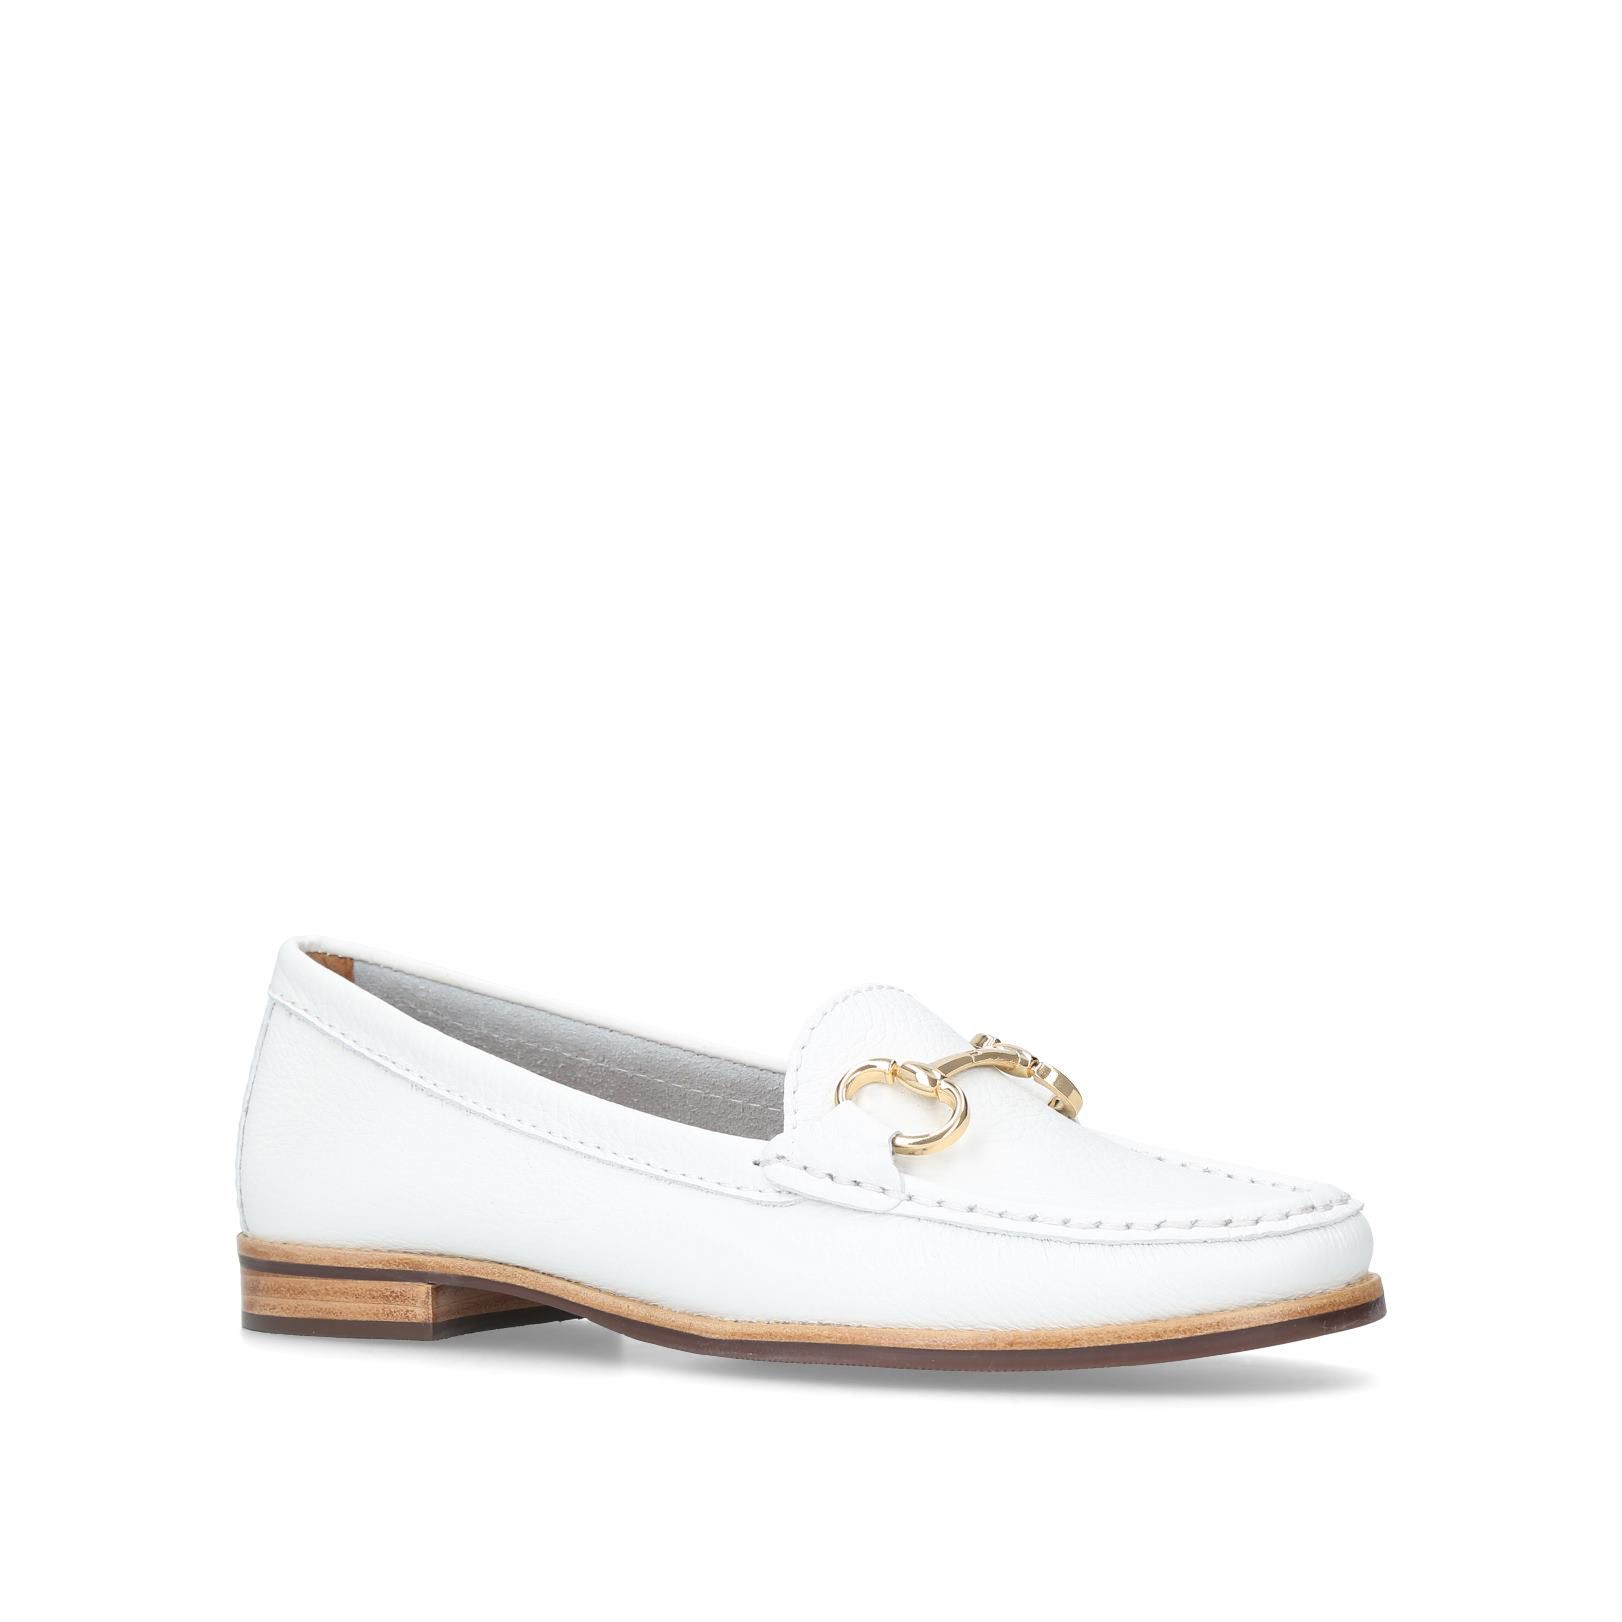 Carvela Comfort Click Loafers, White